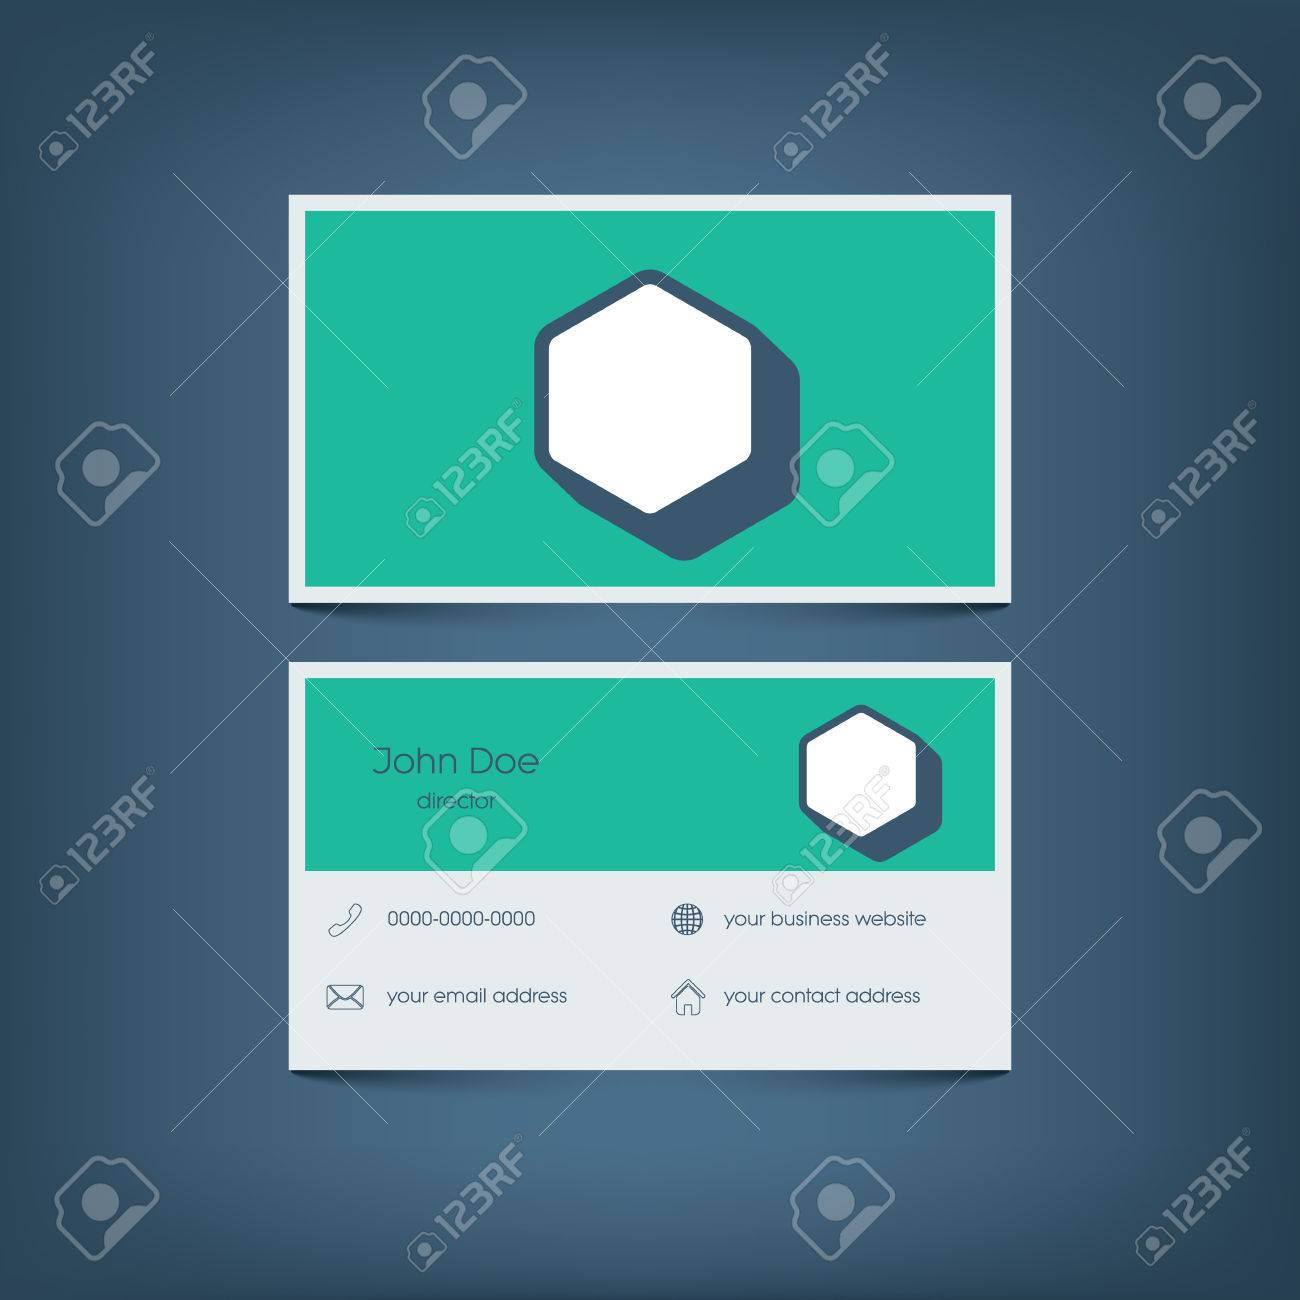 Modern flat design business card template graphic user interface modern flat design business card template graphic user interface with line icons for website accmission Images